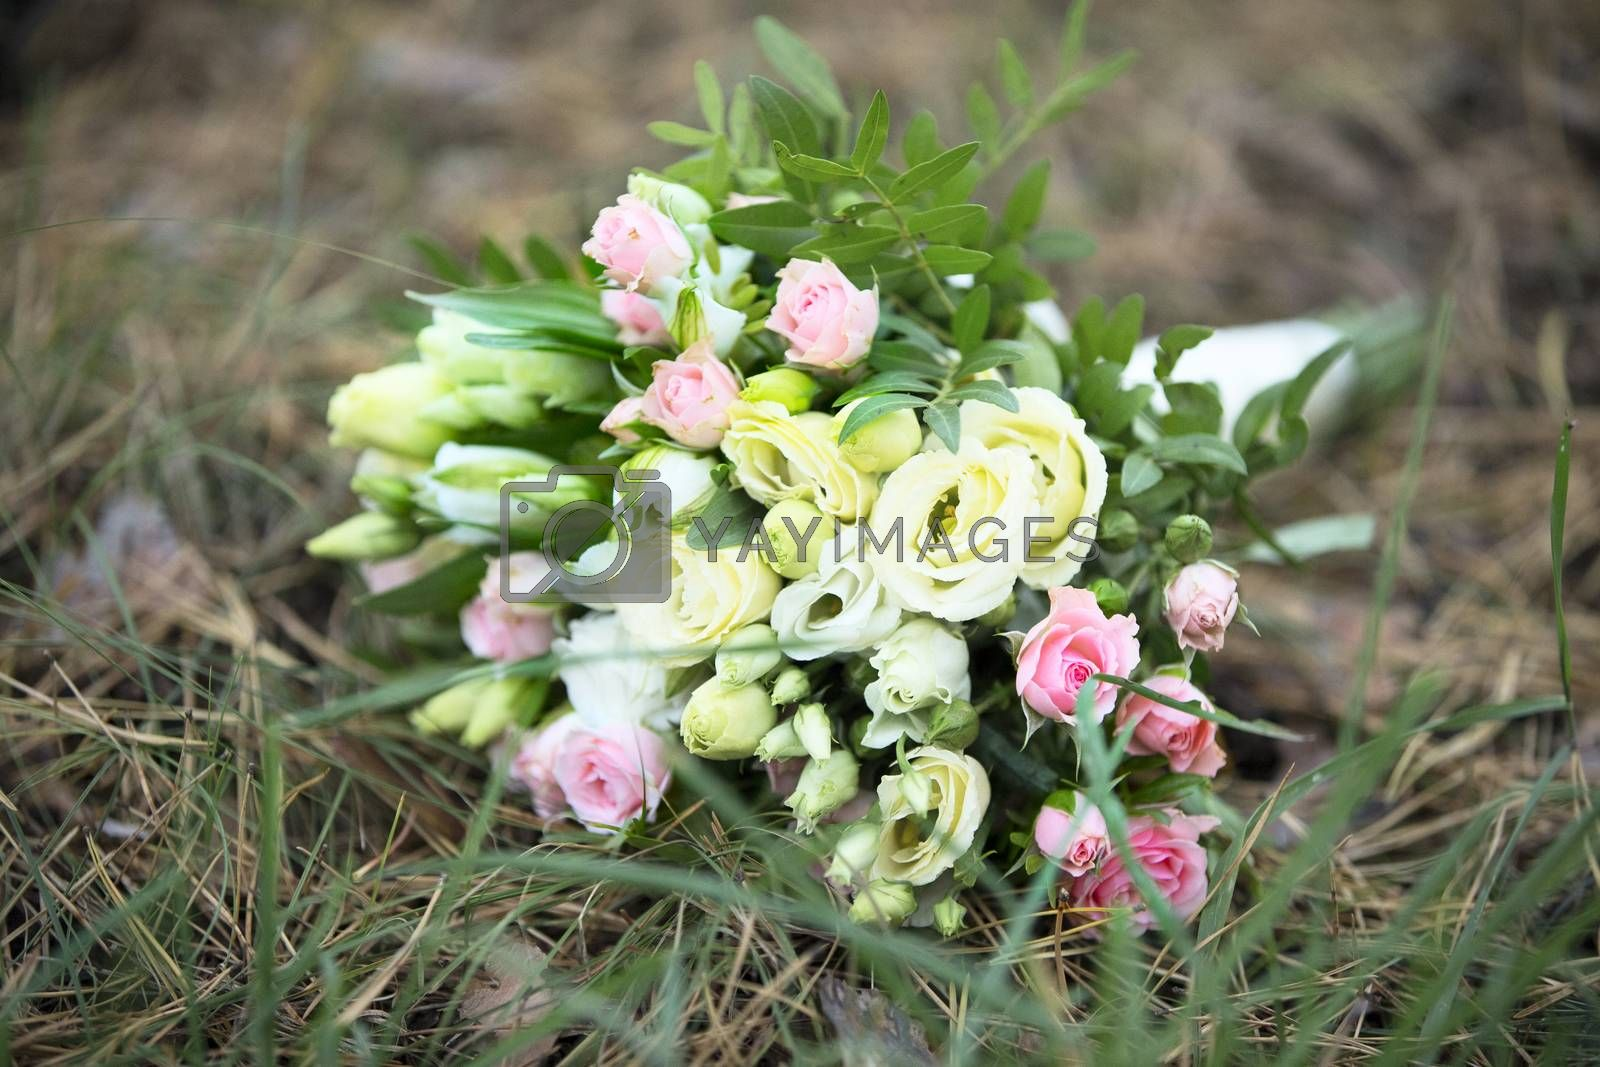 Bridal bouquet. A bouquet of the bride on the grass. The bride's bouquet